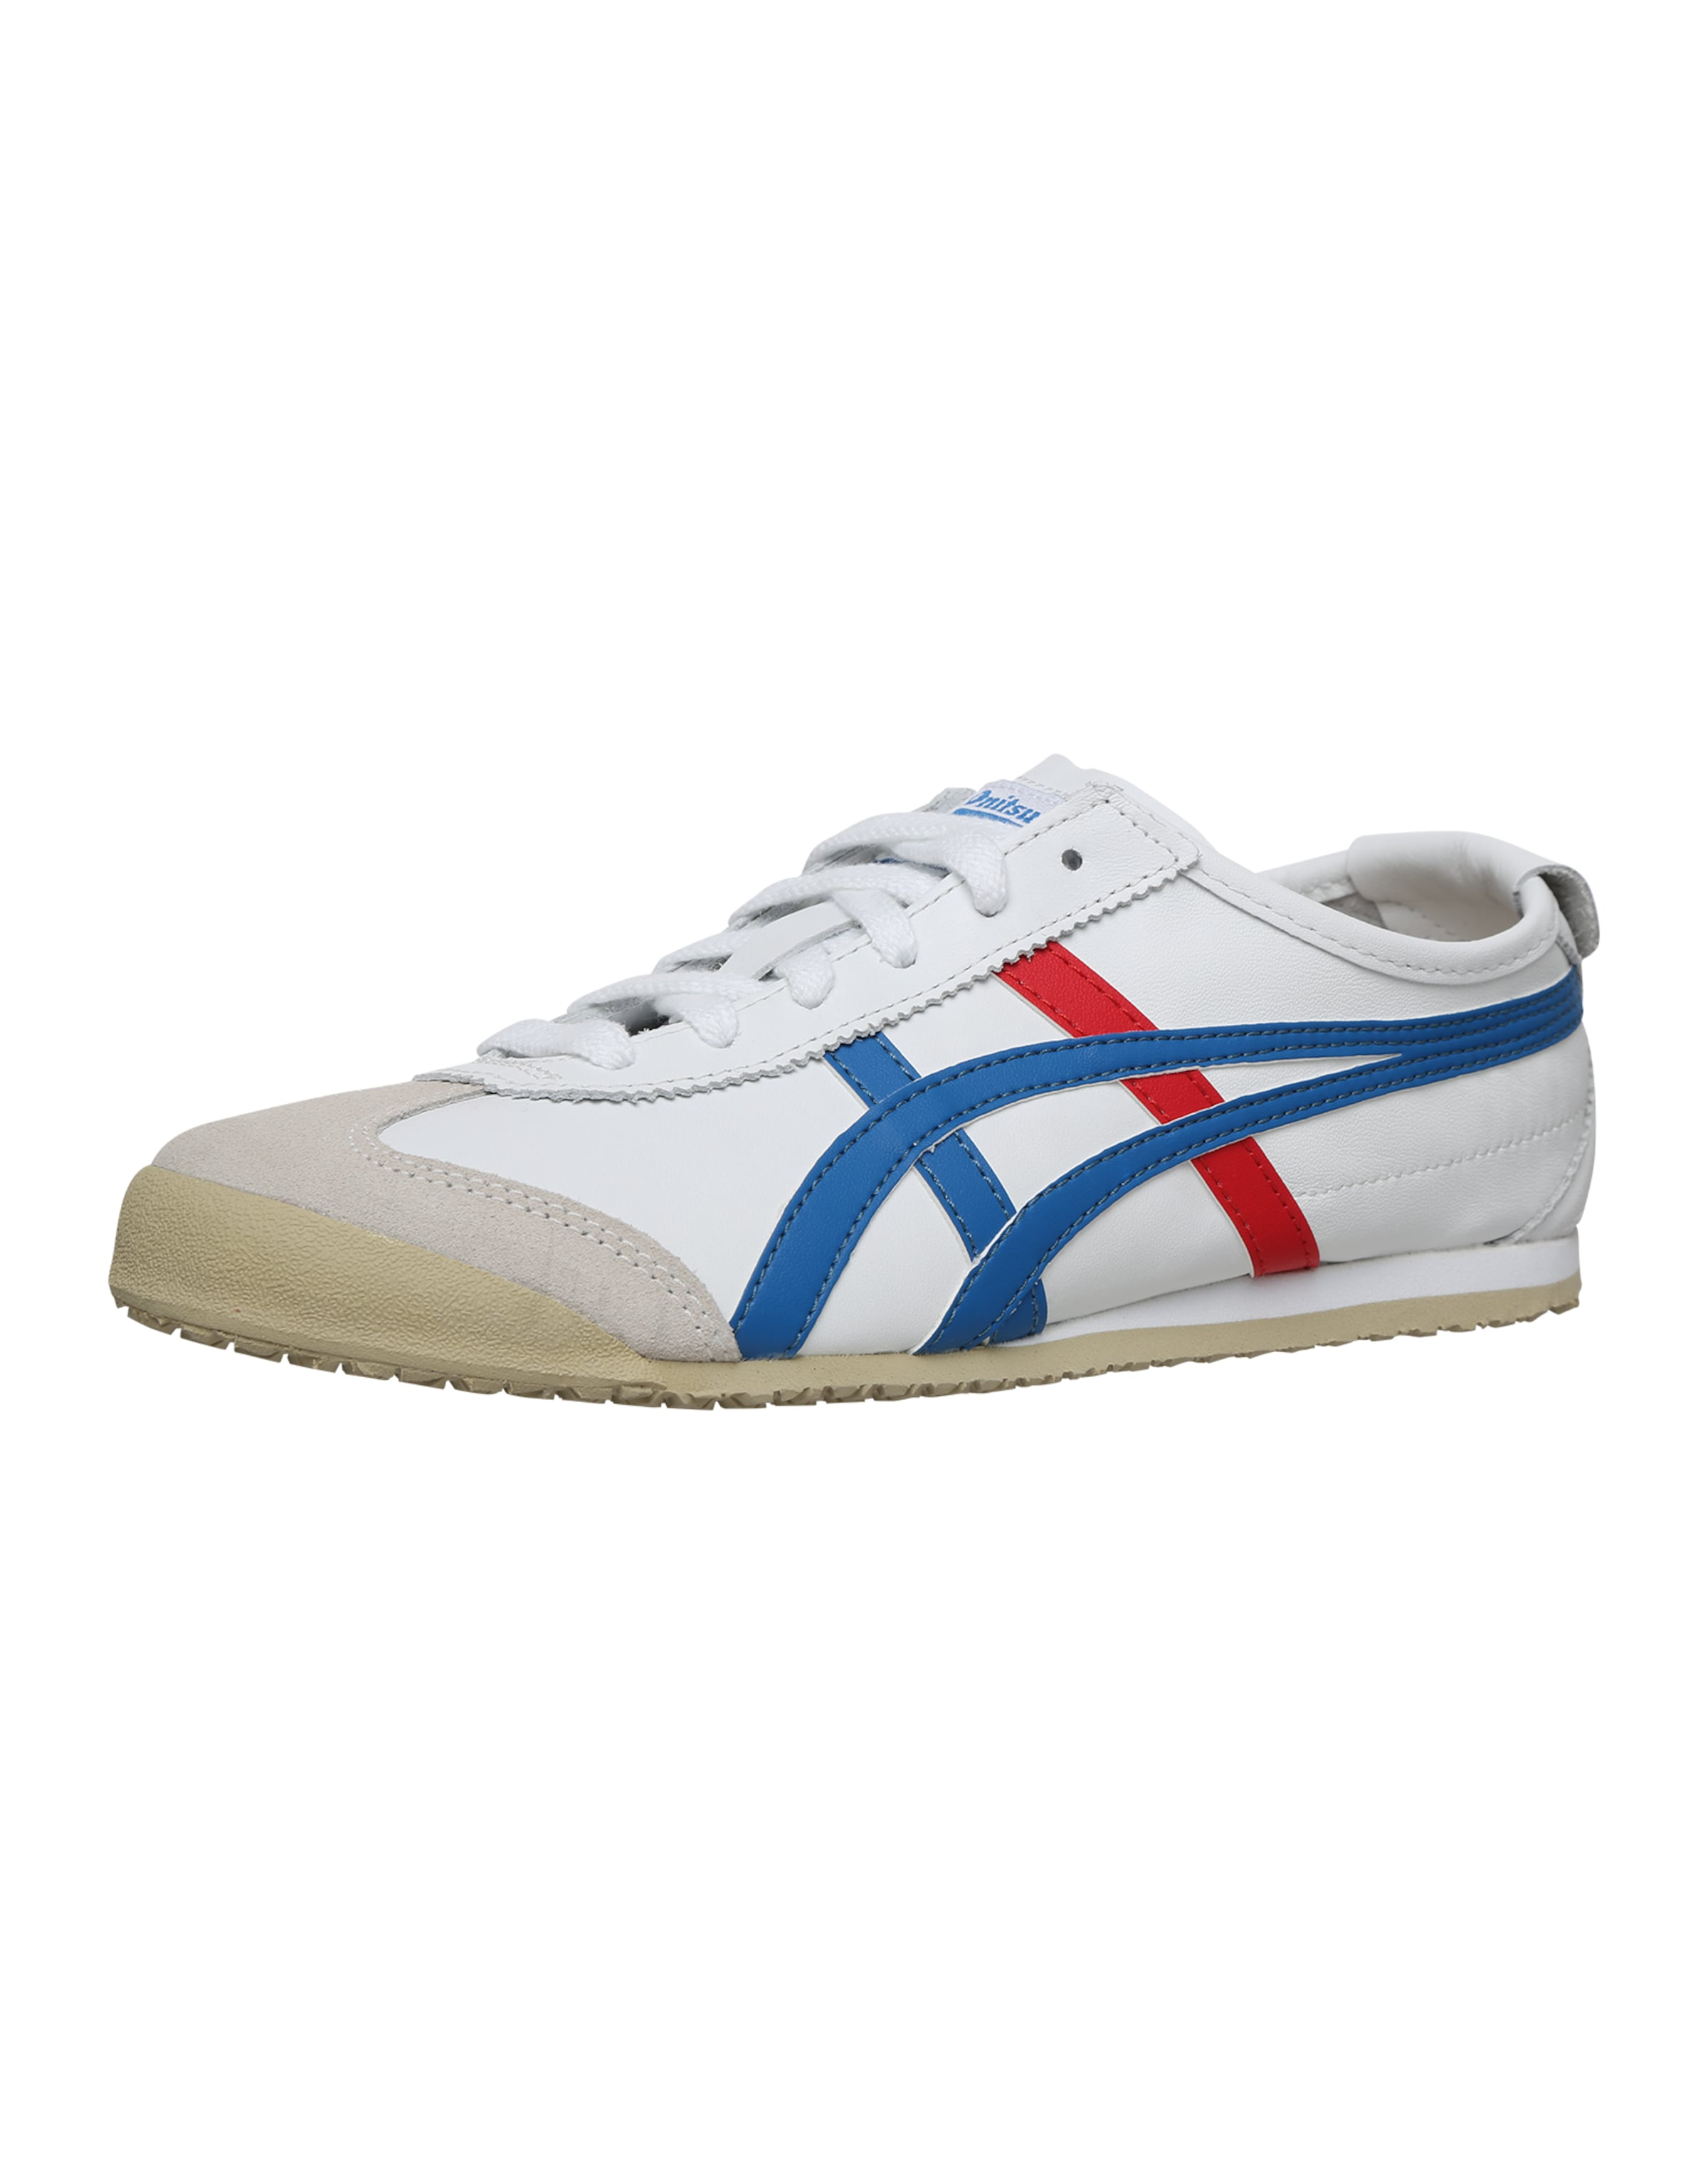 Low 'mexico 66' In Onitsuka Sneaker Tiger Weiß EYHI2eDW9